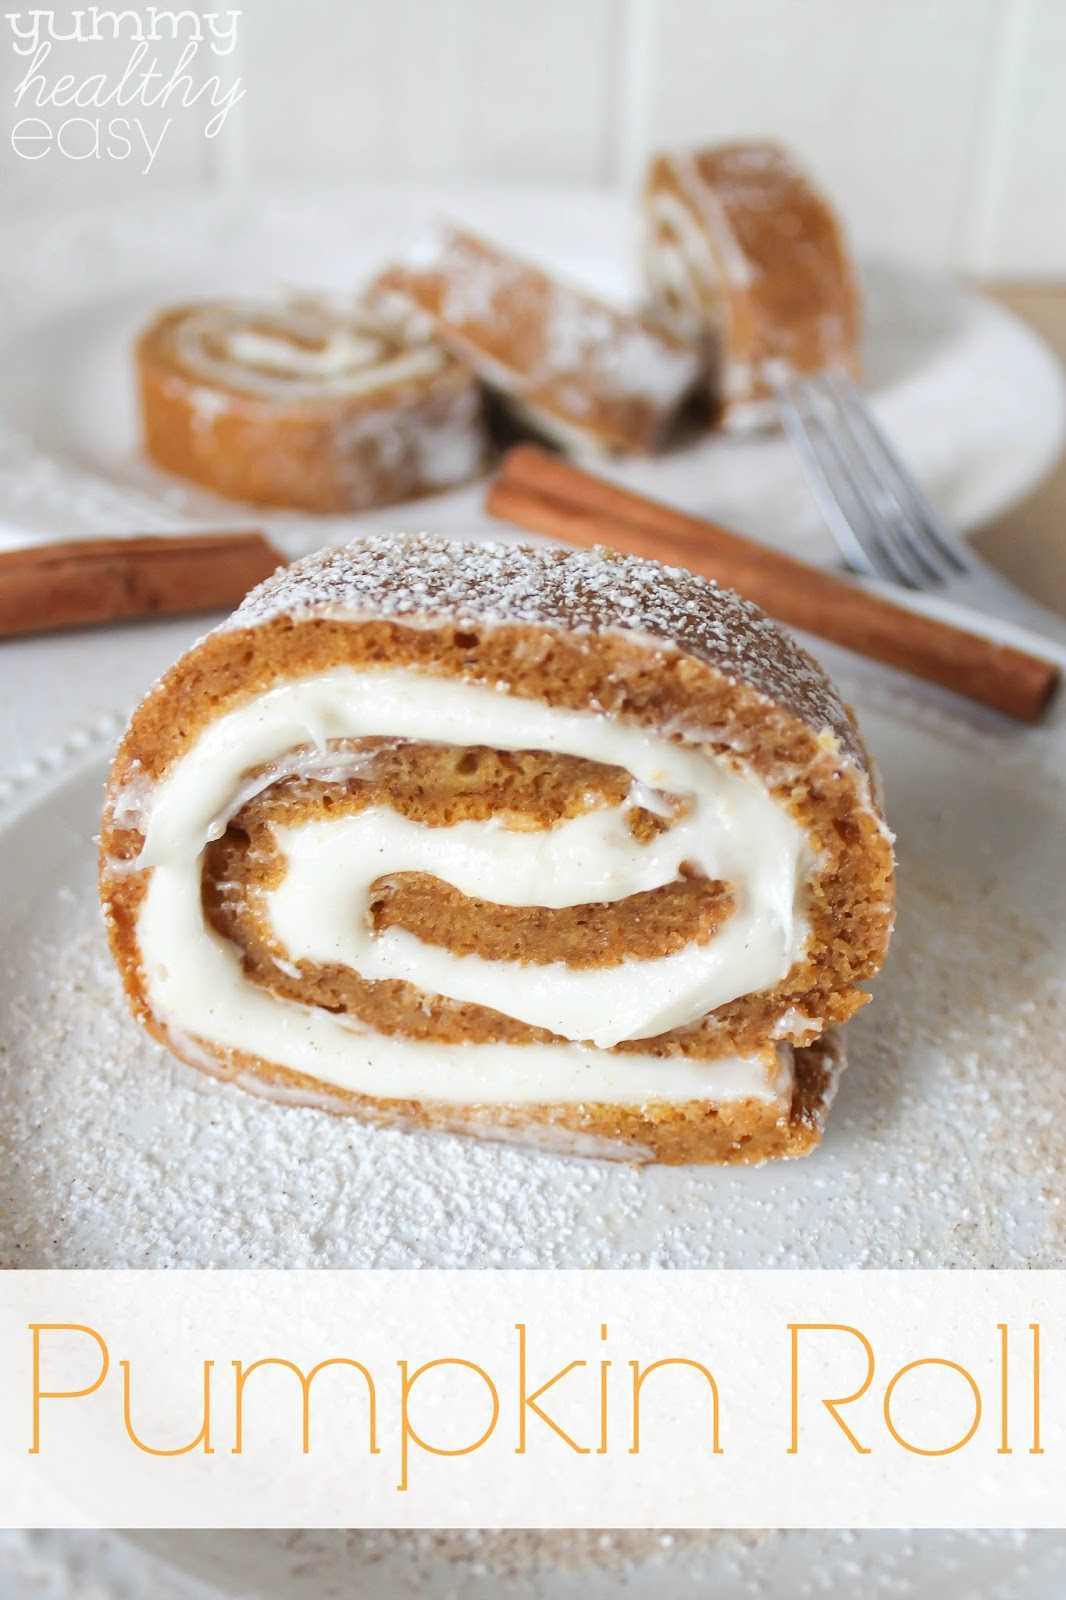 Quick And Easy Fall Desserts  Easy Pumpkin Roll Dessert Yummy Healthy Easy